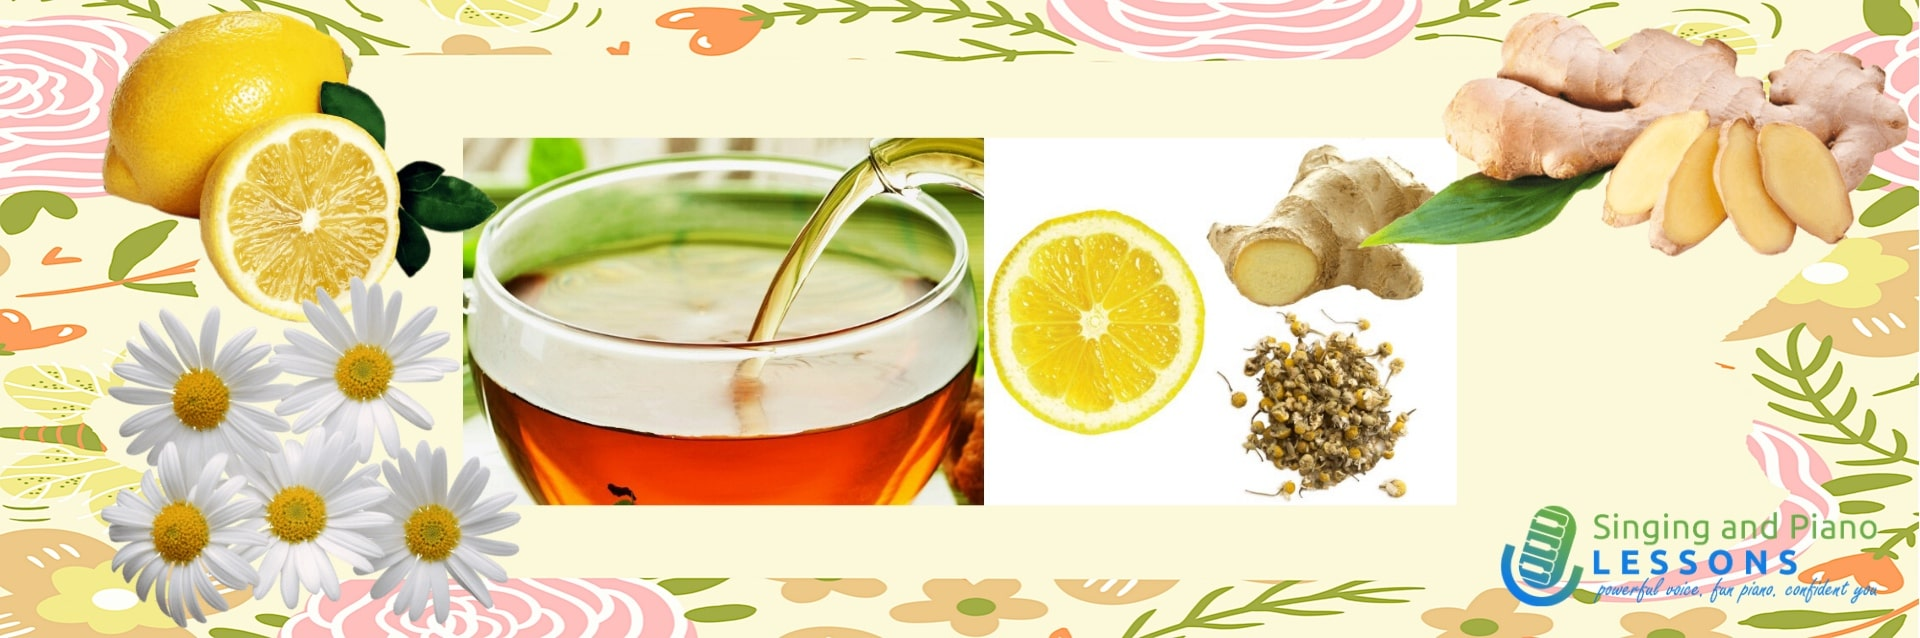 Lemon, Ginger, Chamomile tea is great for Singers